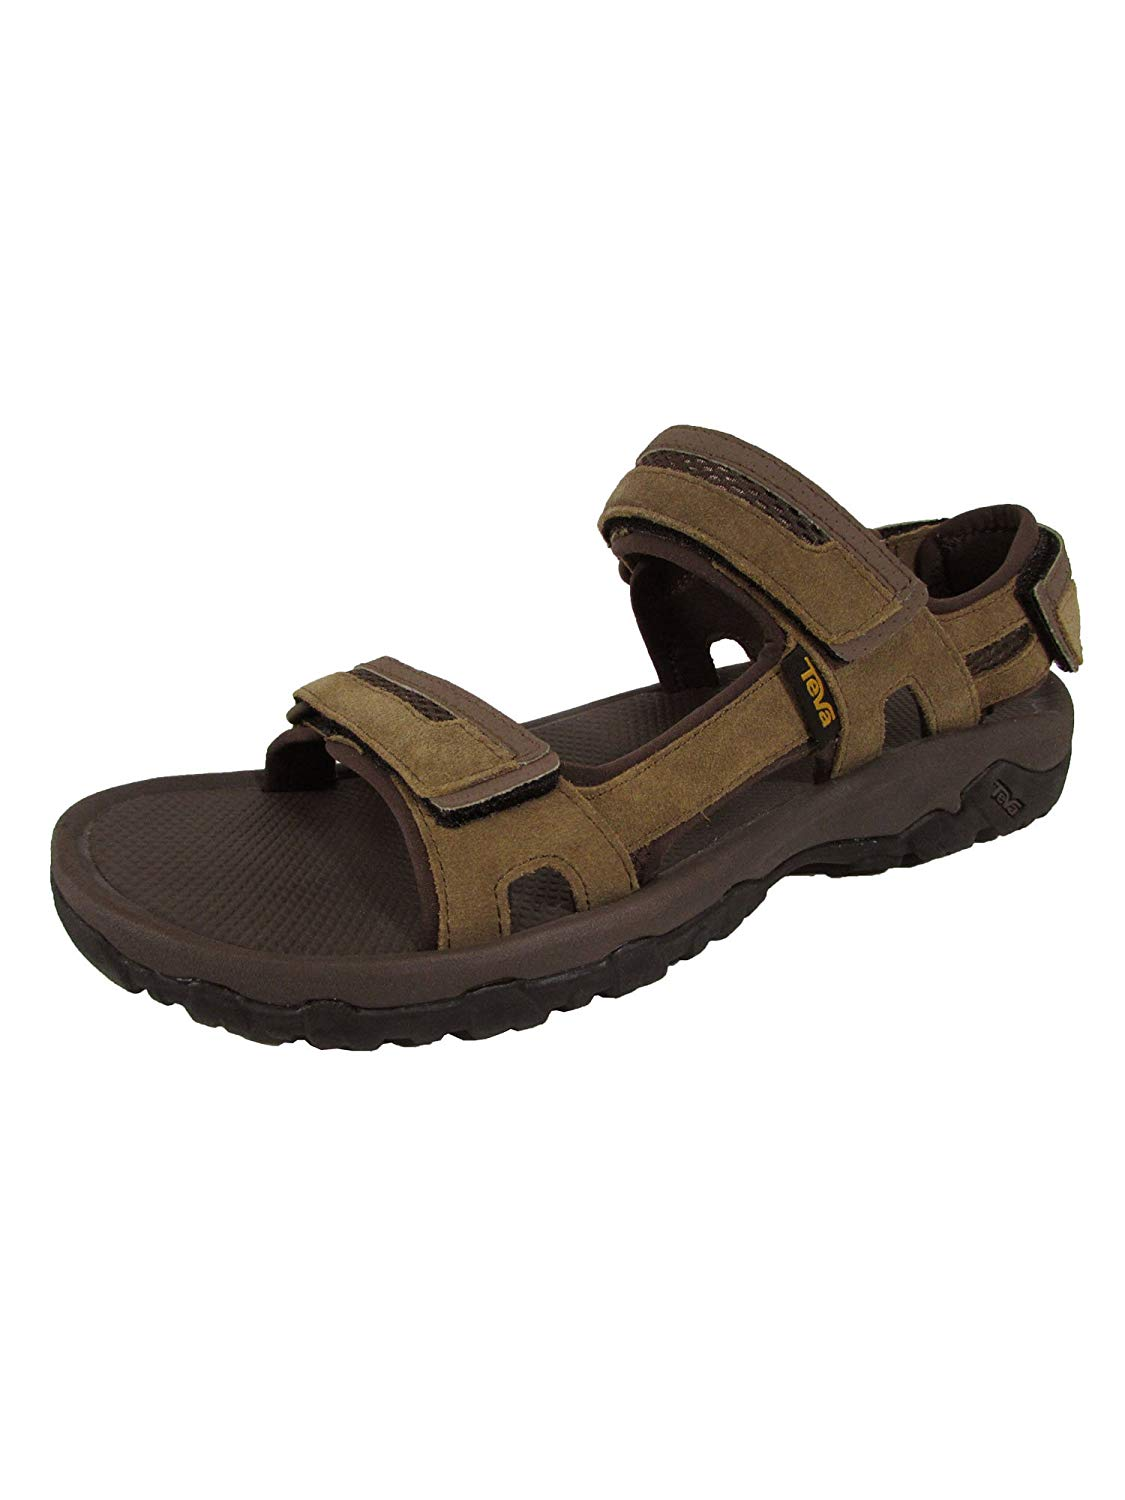 06d793d53a0ac9 Get Quotations · Teva Mens Hudson Off Road Sandal Shoes